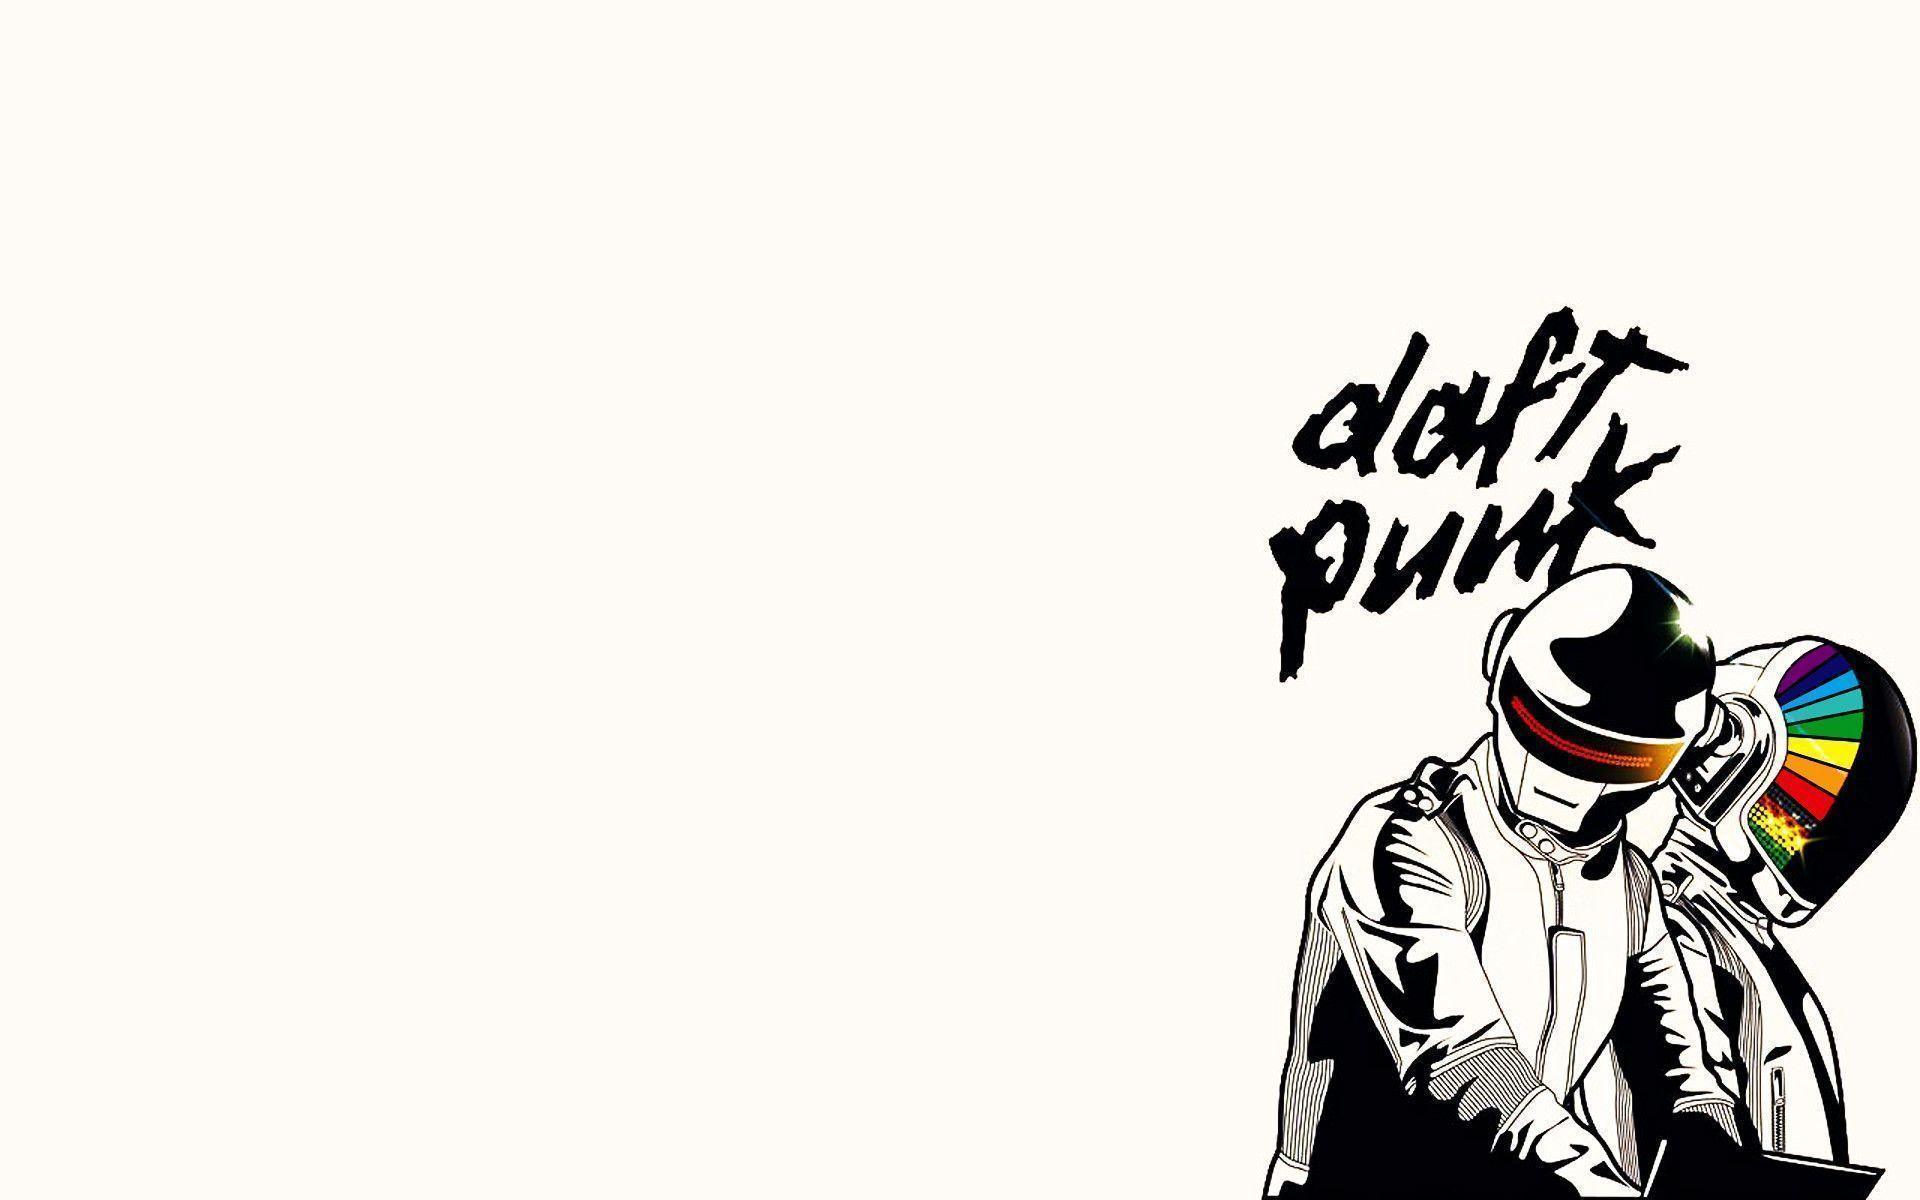 Daft punk wallpaper widescreen